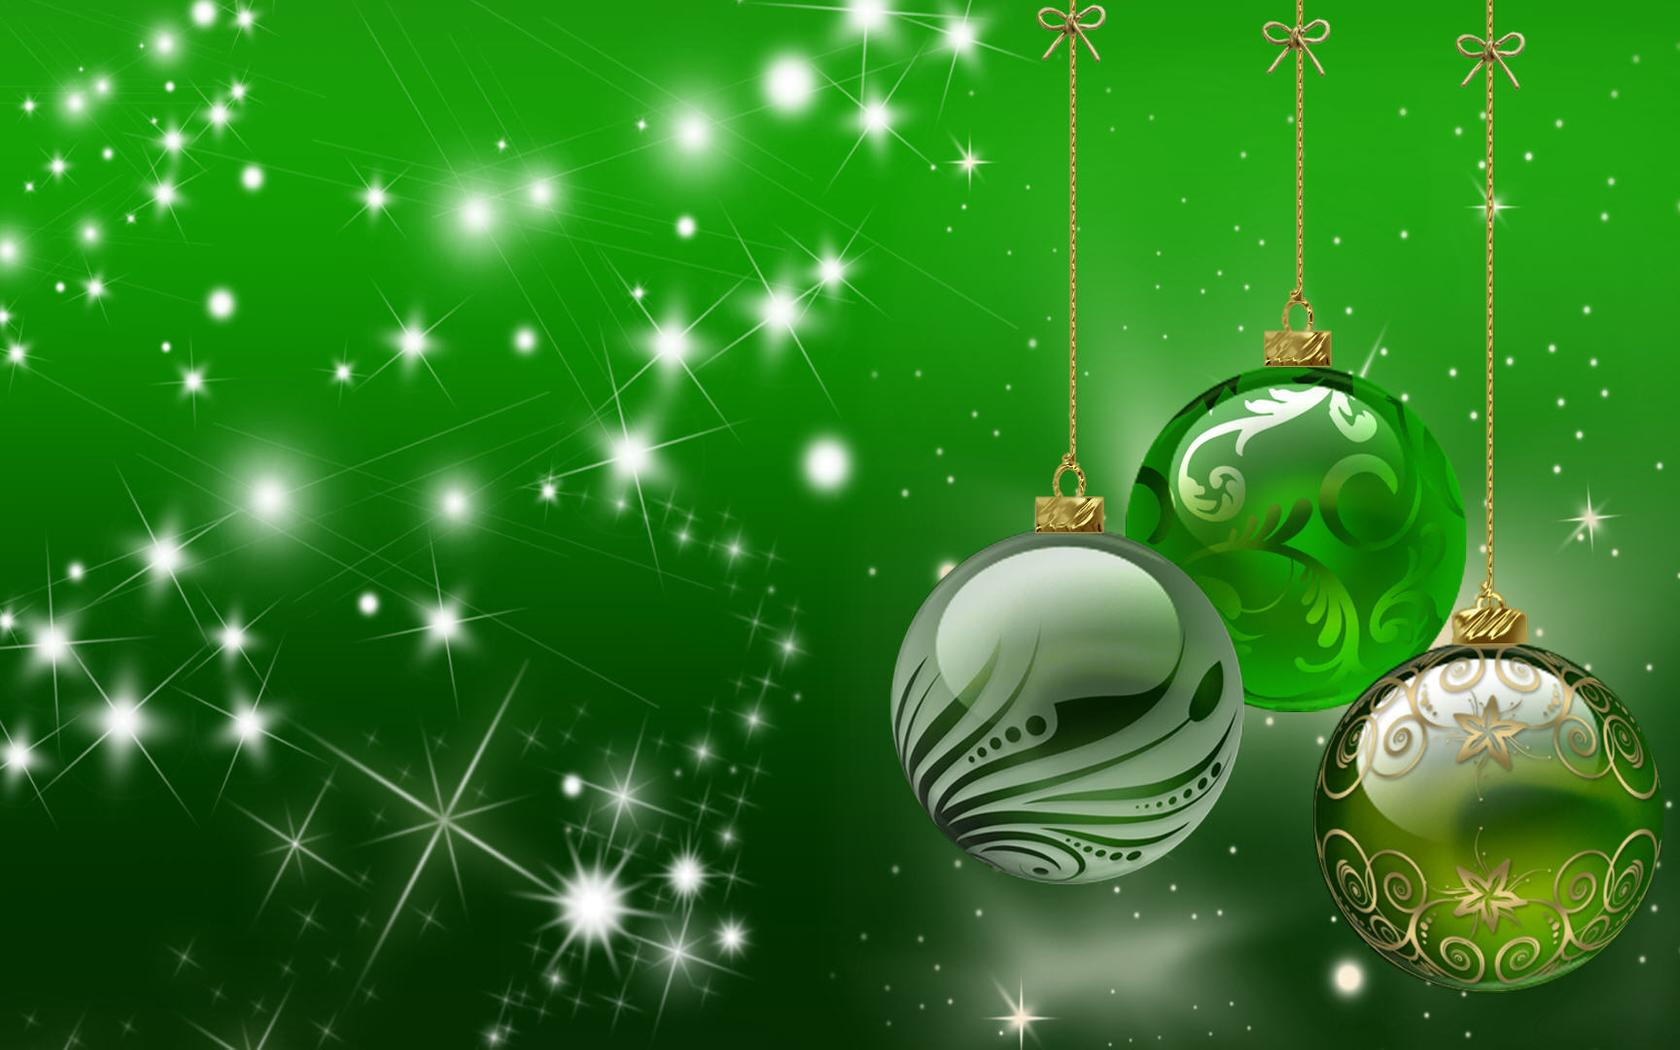 green holiday wallpaper - christmas accessories wallpaper download